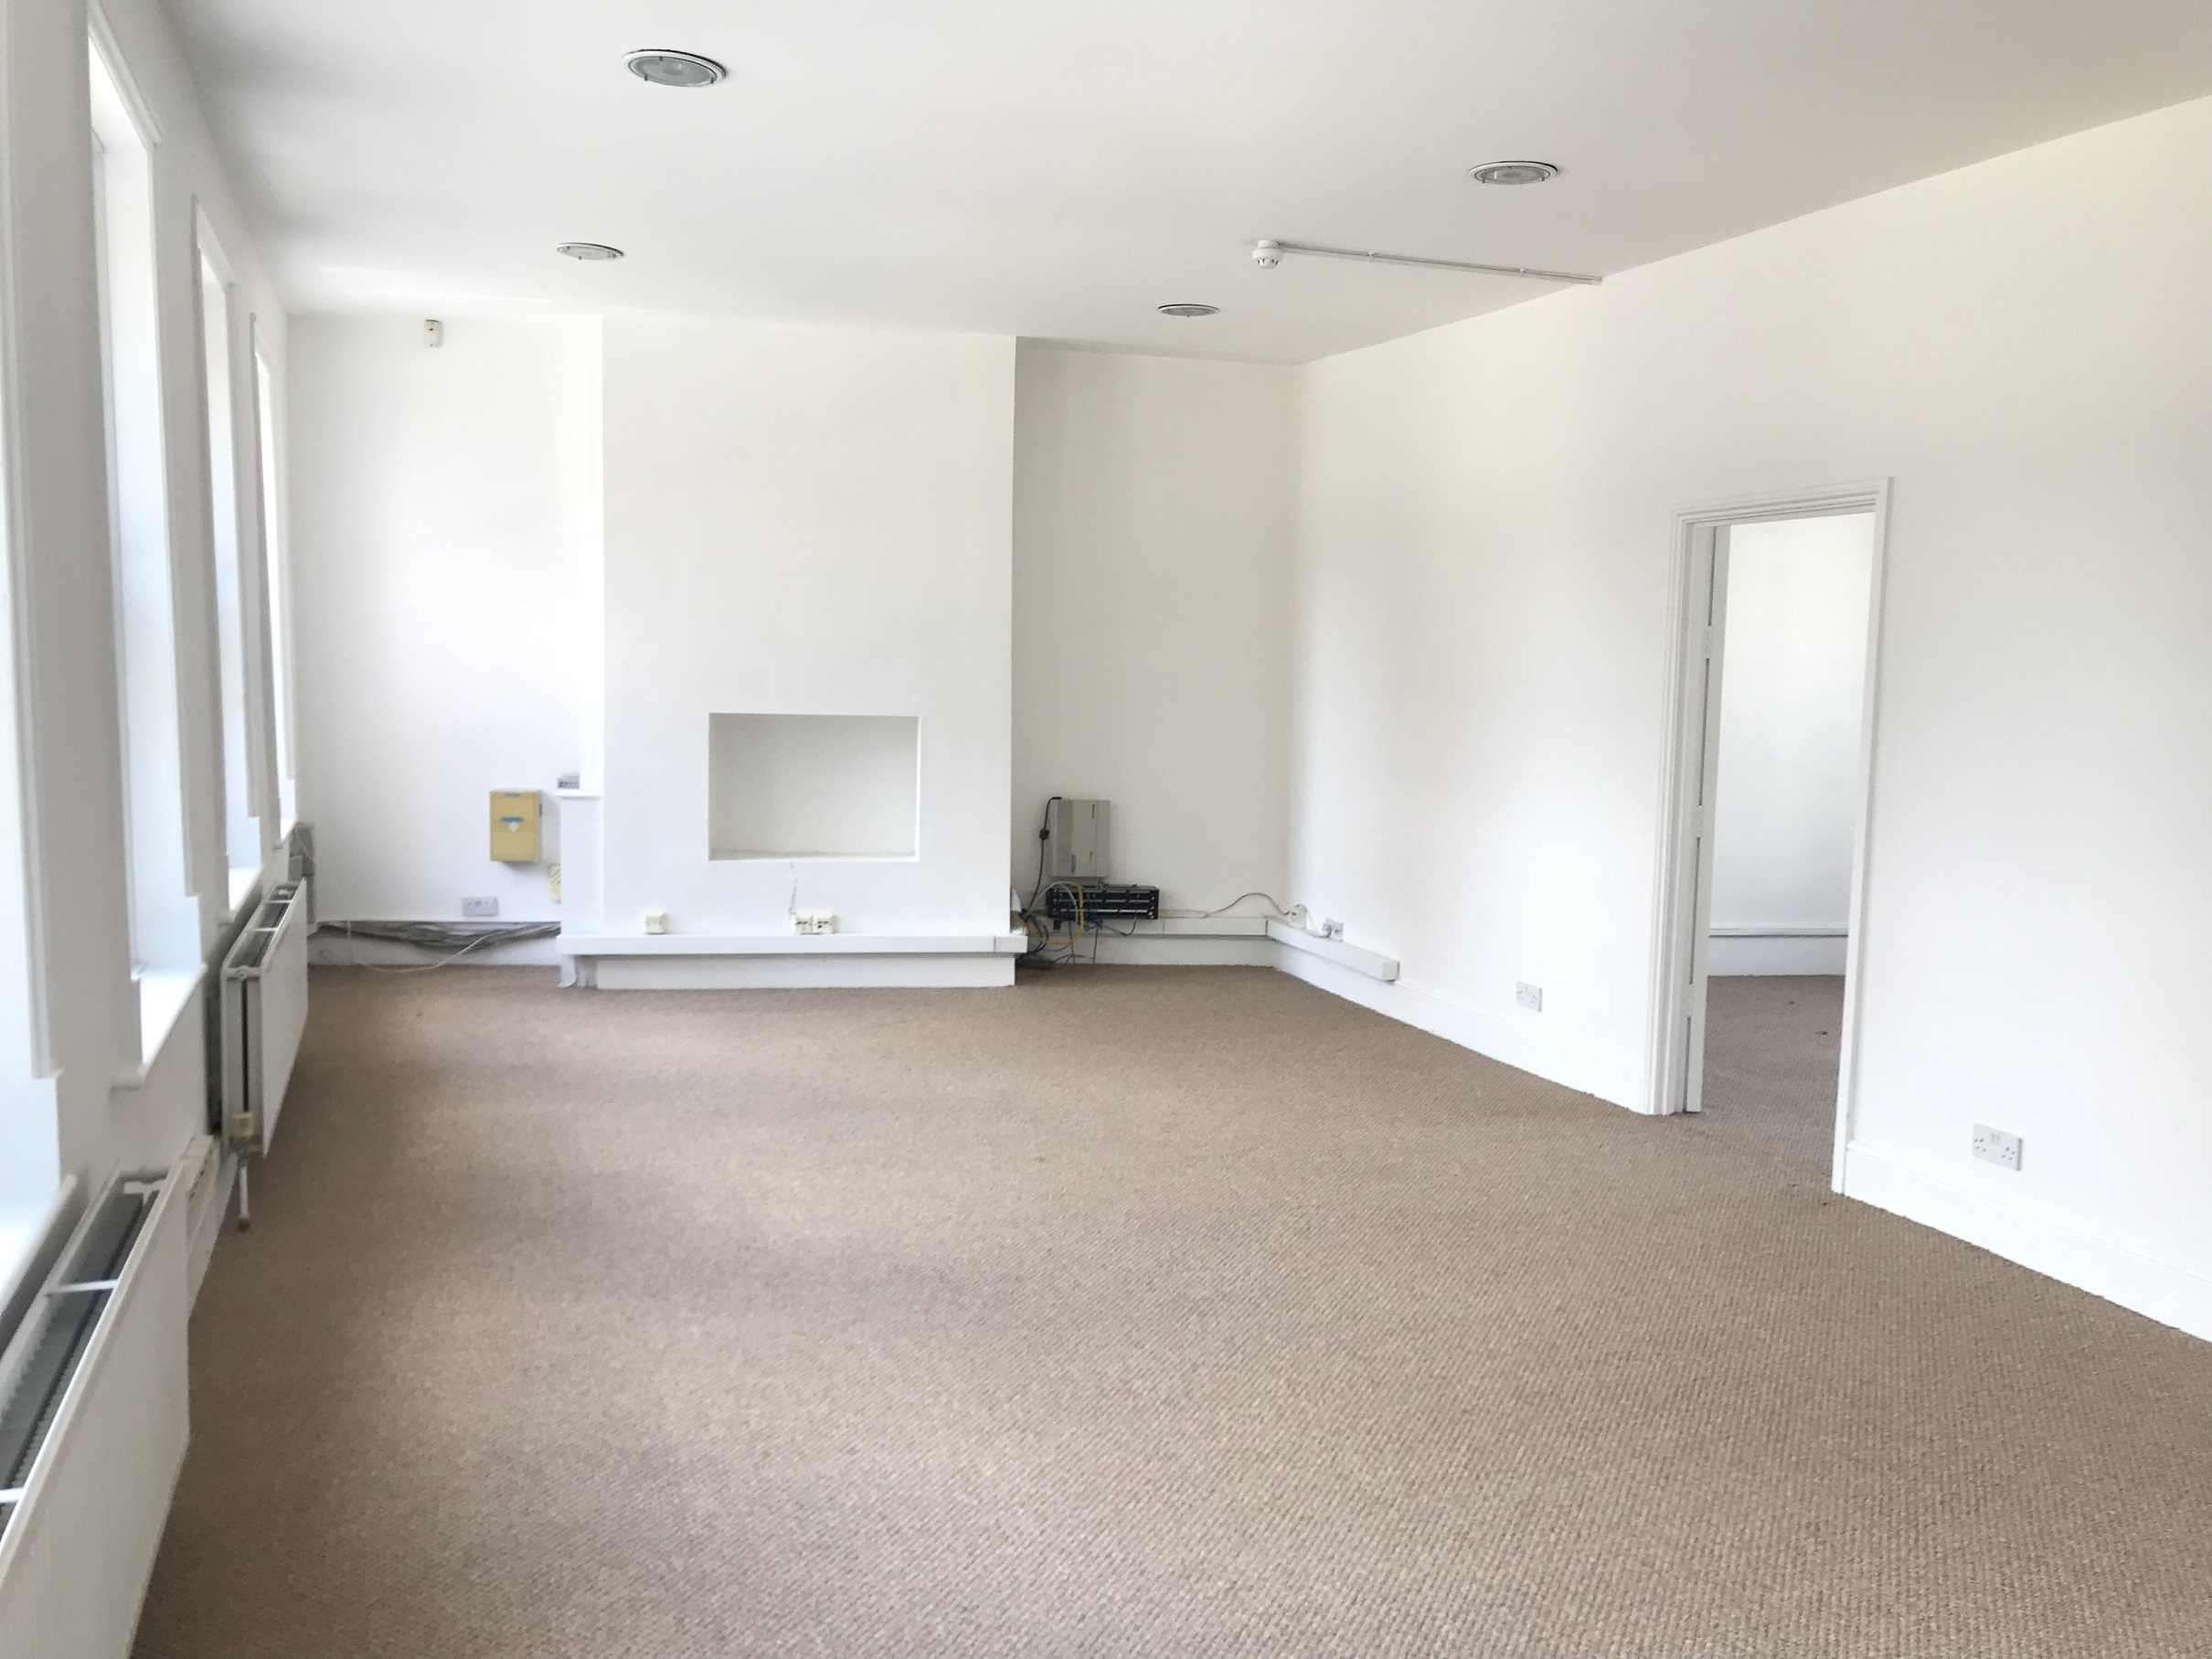 **LET LET **7/9 FERDINAND STREET CAMDEN NW1*LET LET 1ST FLOOR OFFICE 750 SQ FT TO LET